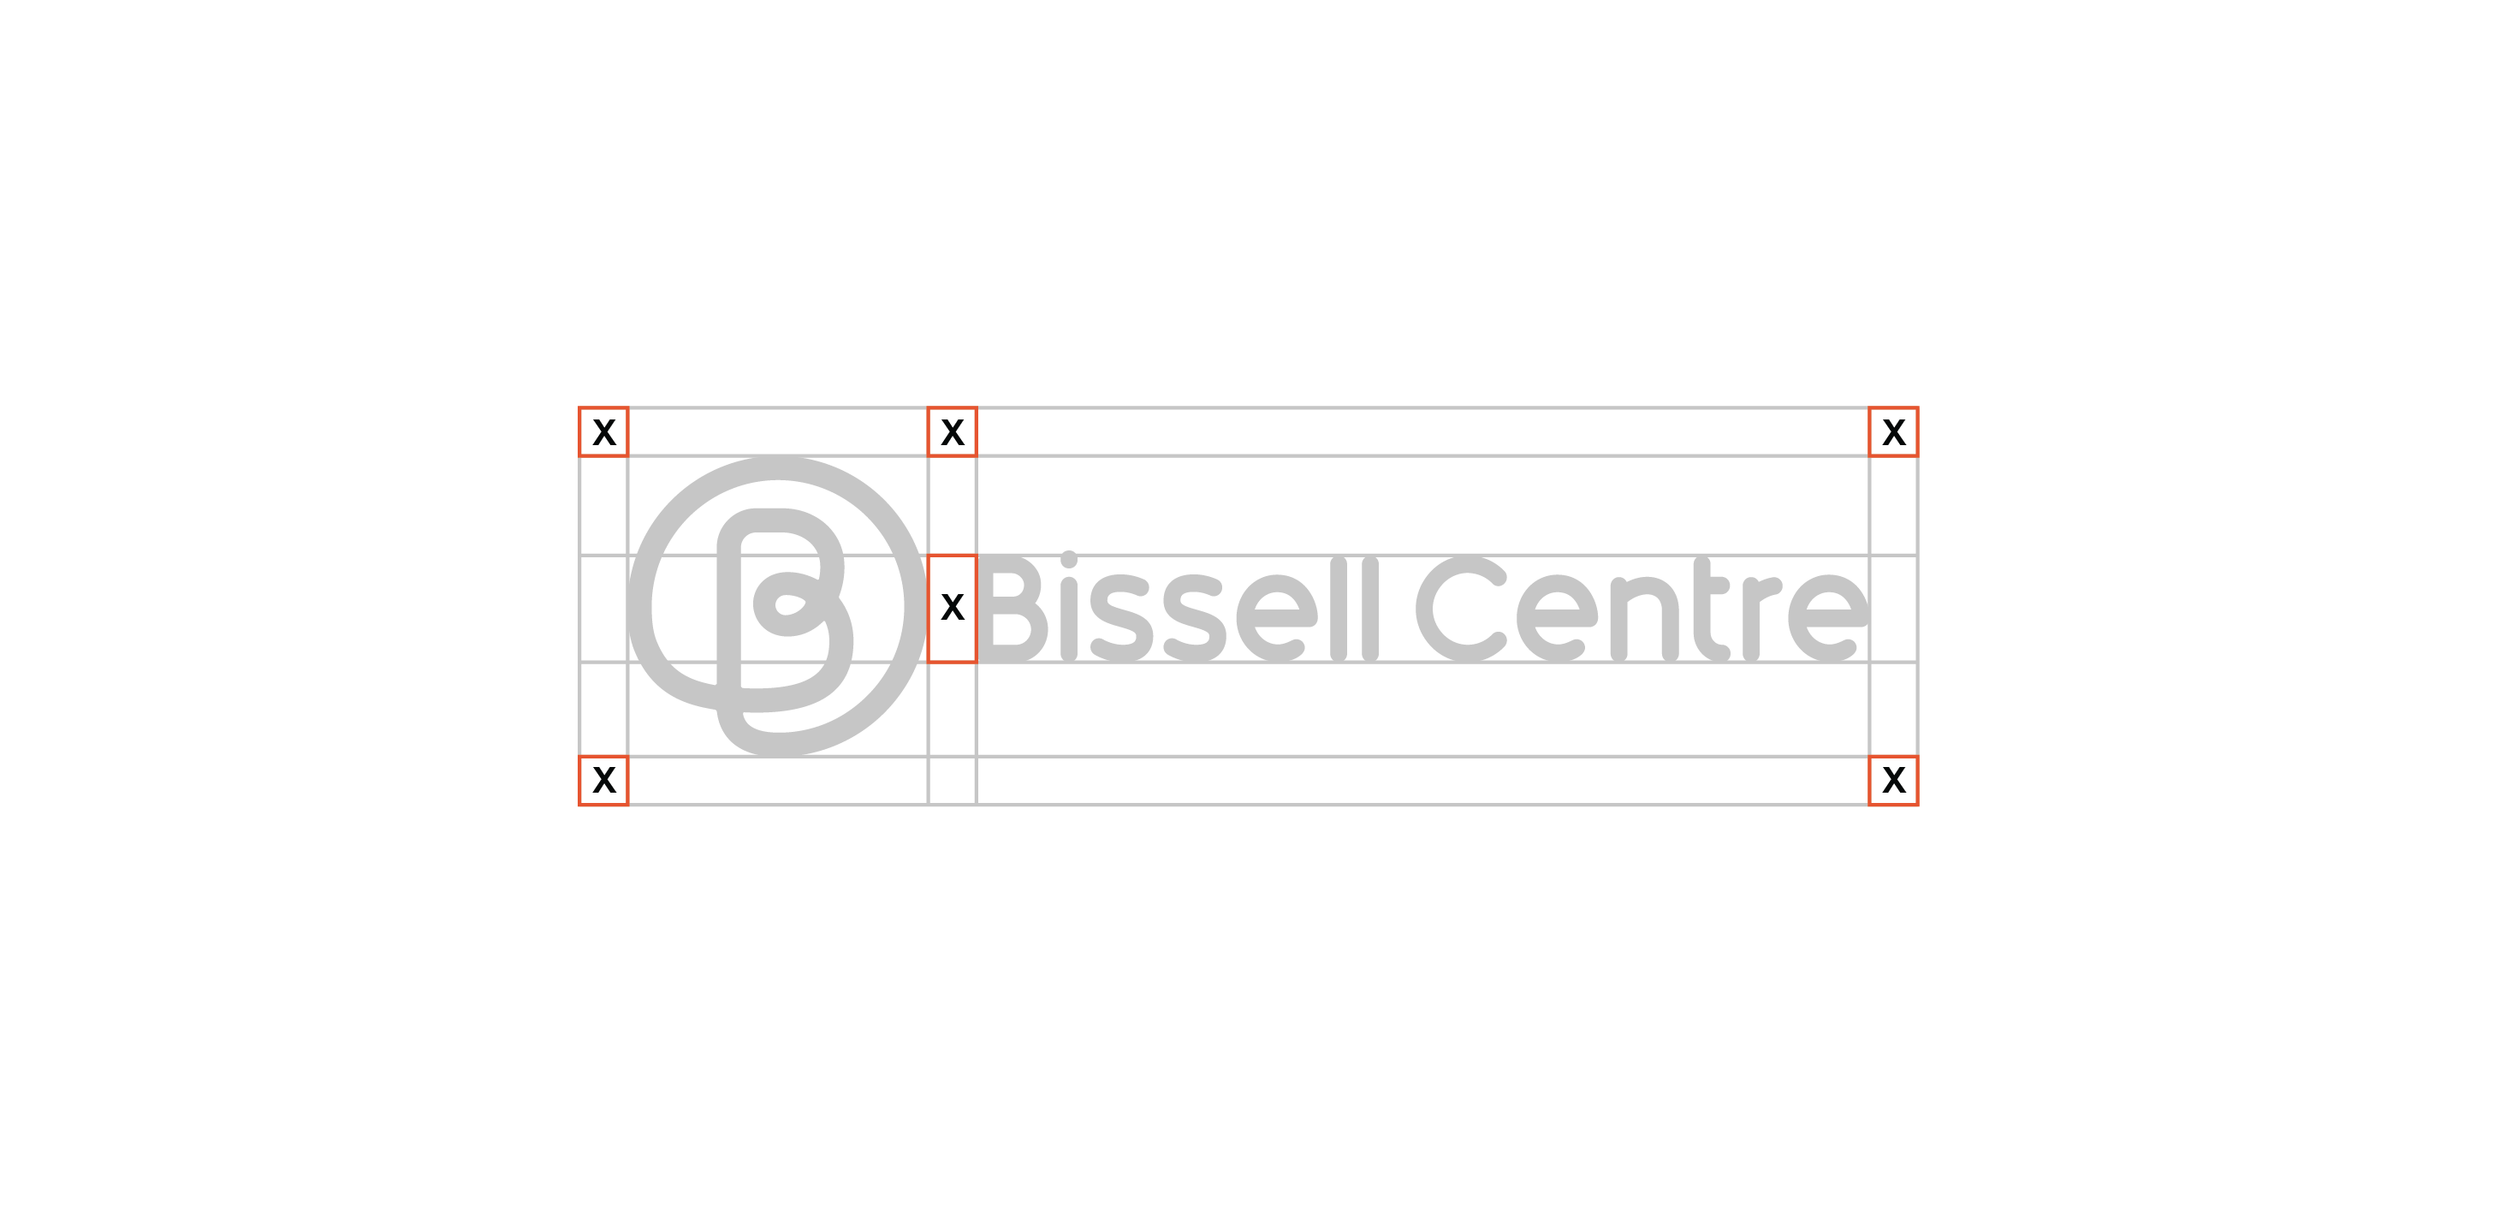 Clear Space  The Bissell Centre logo should always be surrounded by a minimum area of clear space. No other visual elements may enter the clear space. Care should be taken whenever laying the logo over a colour, background or image.